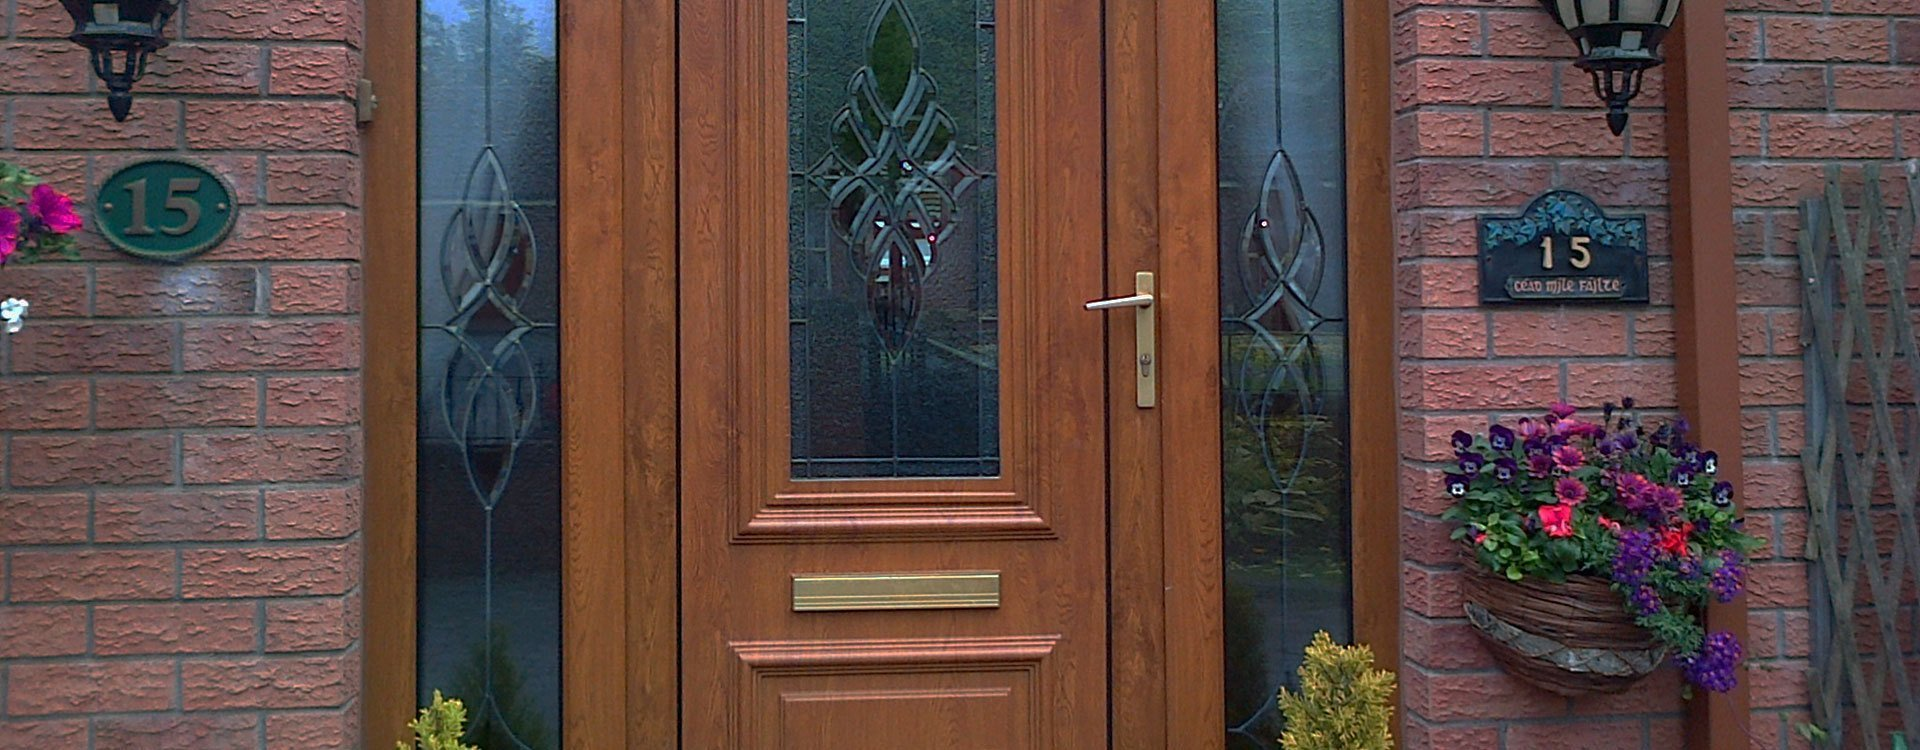 expert wooden windows and doors manufacturer